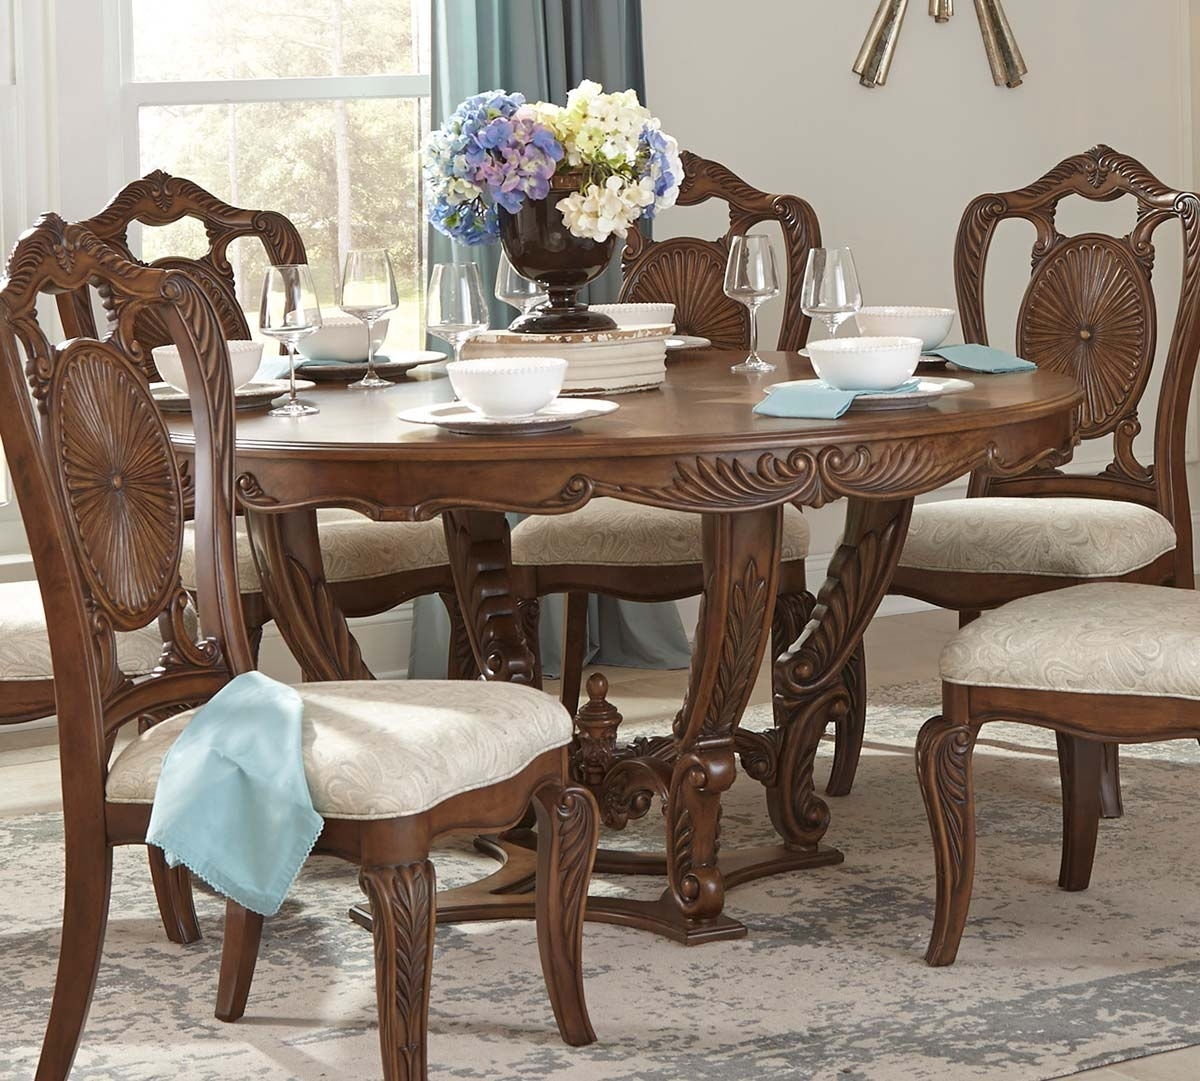 Homelegance Moorewood Park Round Dining Table With Leaf – Pecan 1704 With Best And Newest Bale Rustic Grey Dining Tables (Image 14 of 20)